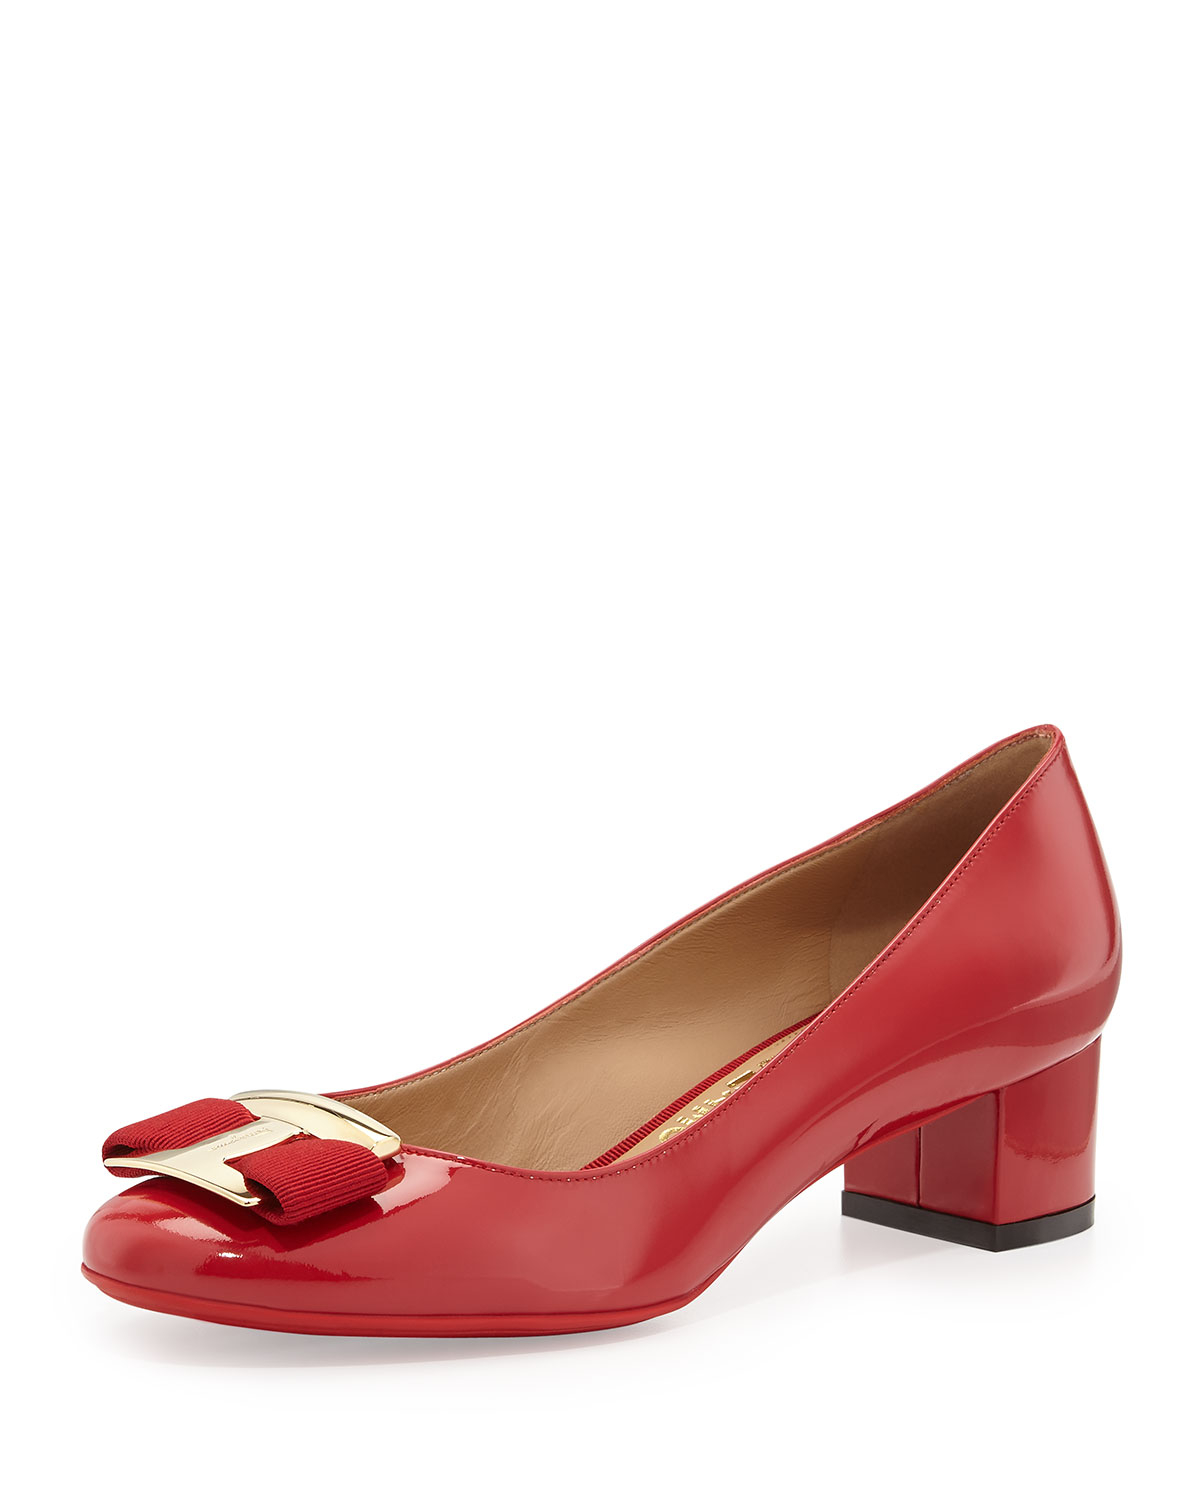 Ferragamo Ninna Low-heel Bow Pump in Red | Lyst